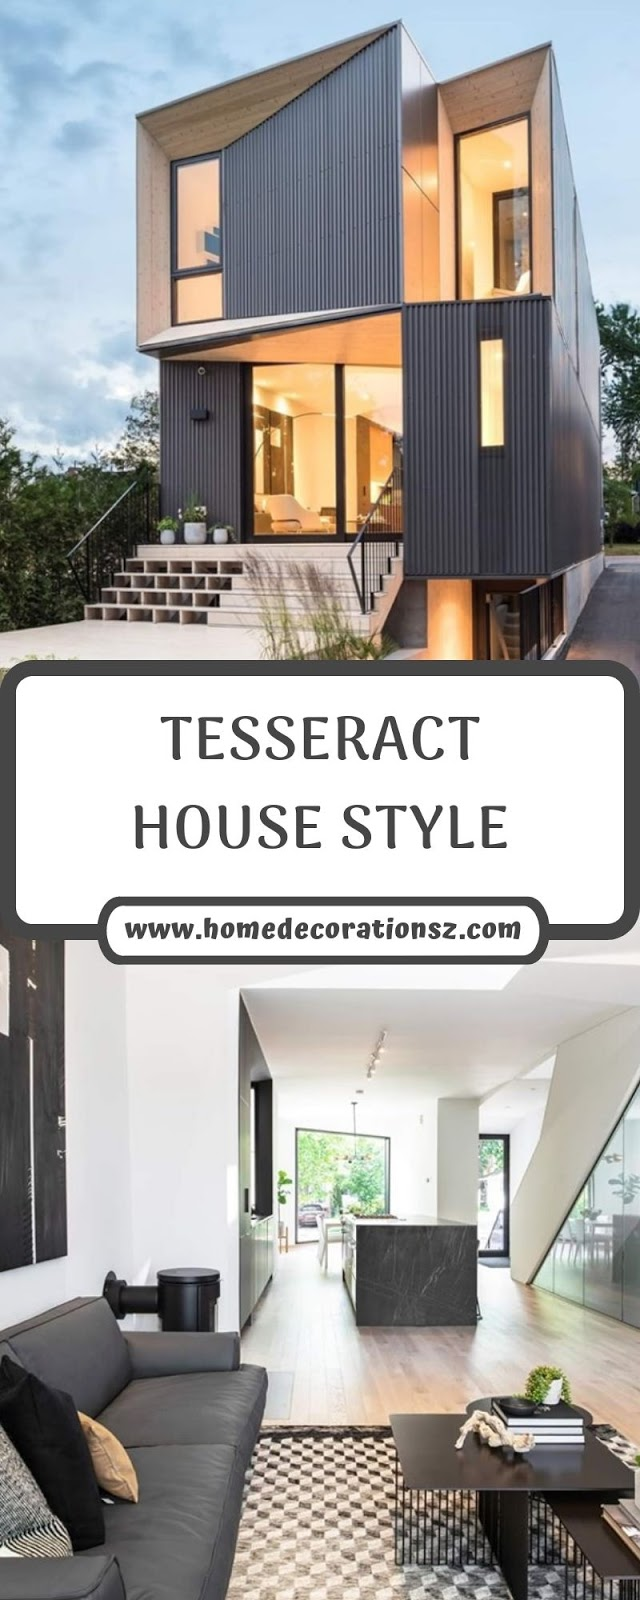 TESSERACT HOUSE STYLE